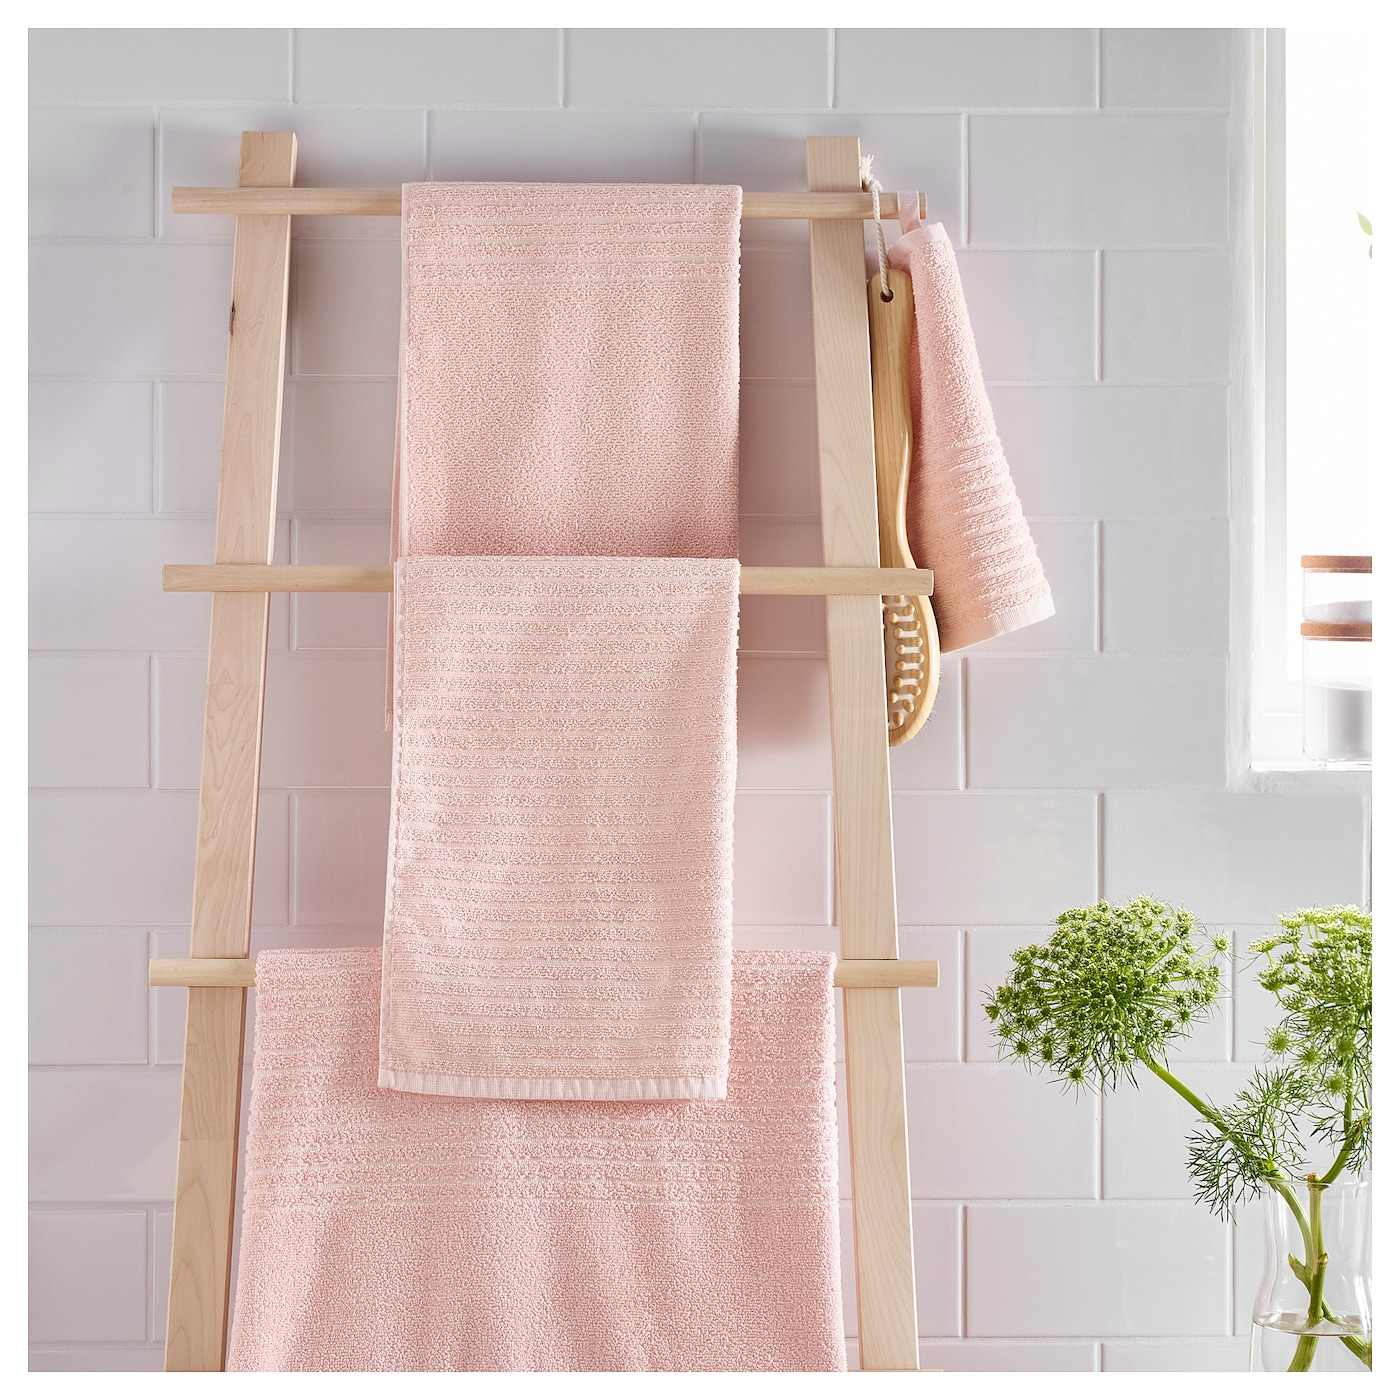 IKEA VÅGSJÖN washcloth The long, fine fibres of combed cotton create a soft and durable towel.